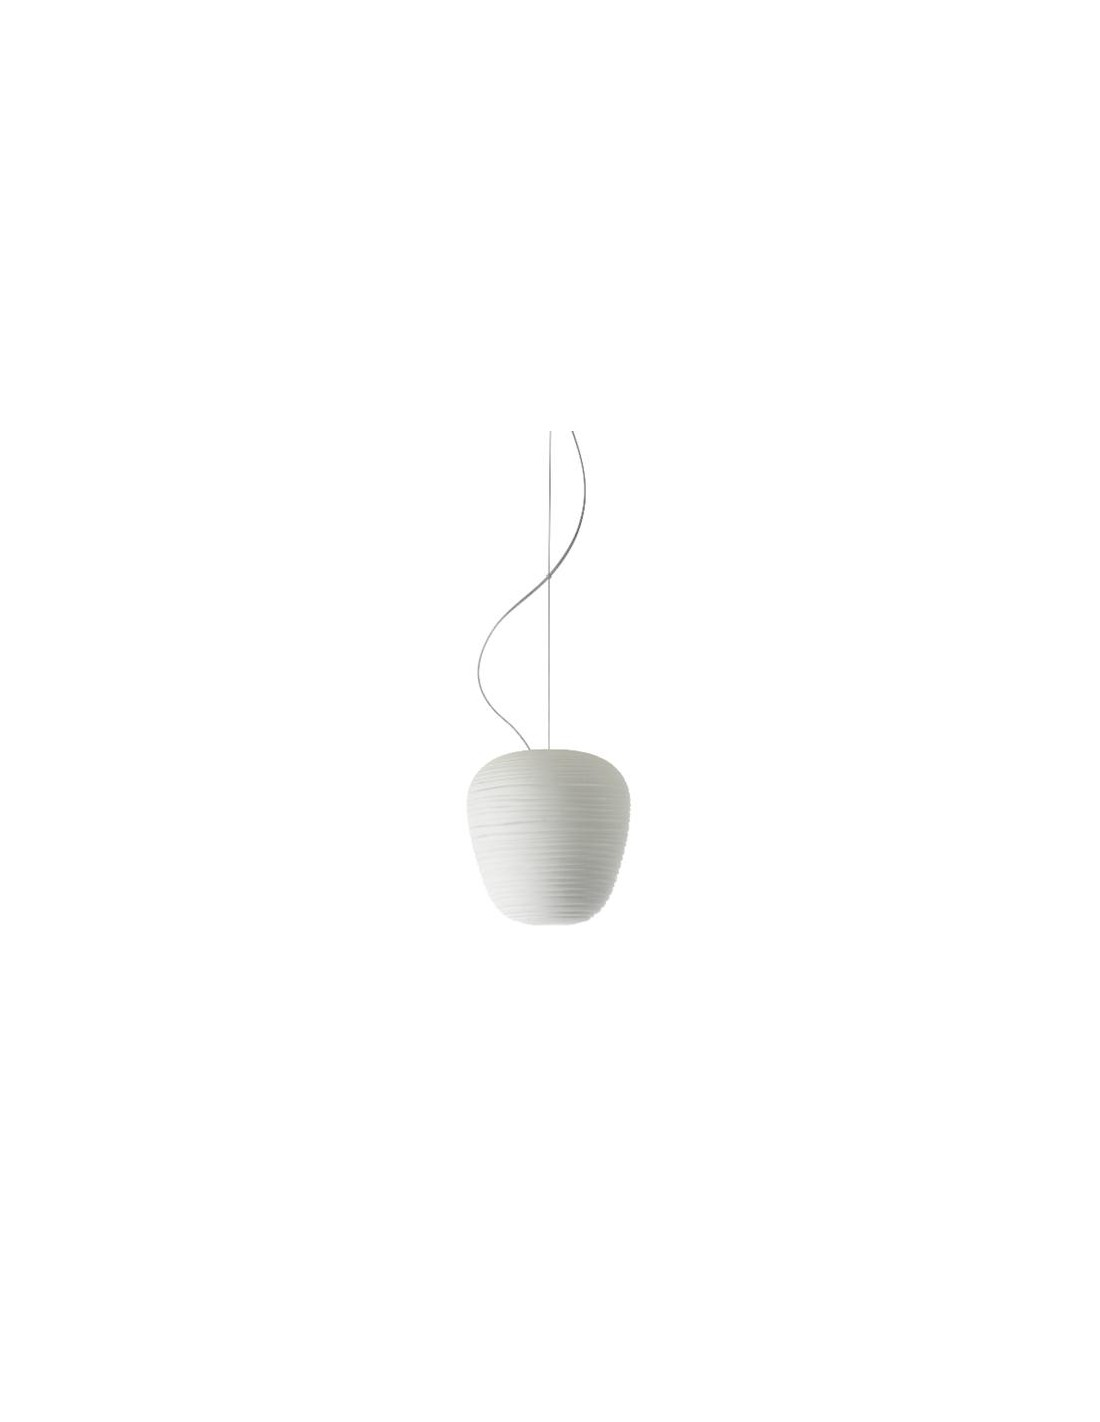 Suspension Rituals 3 foscarini blanc opalin